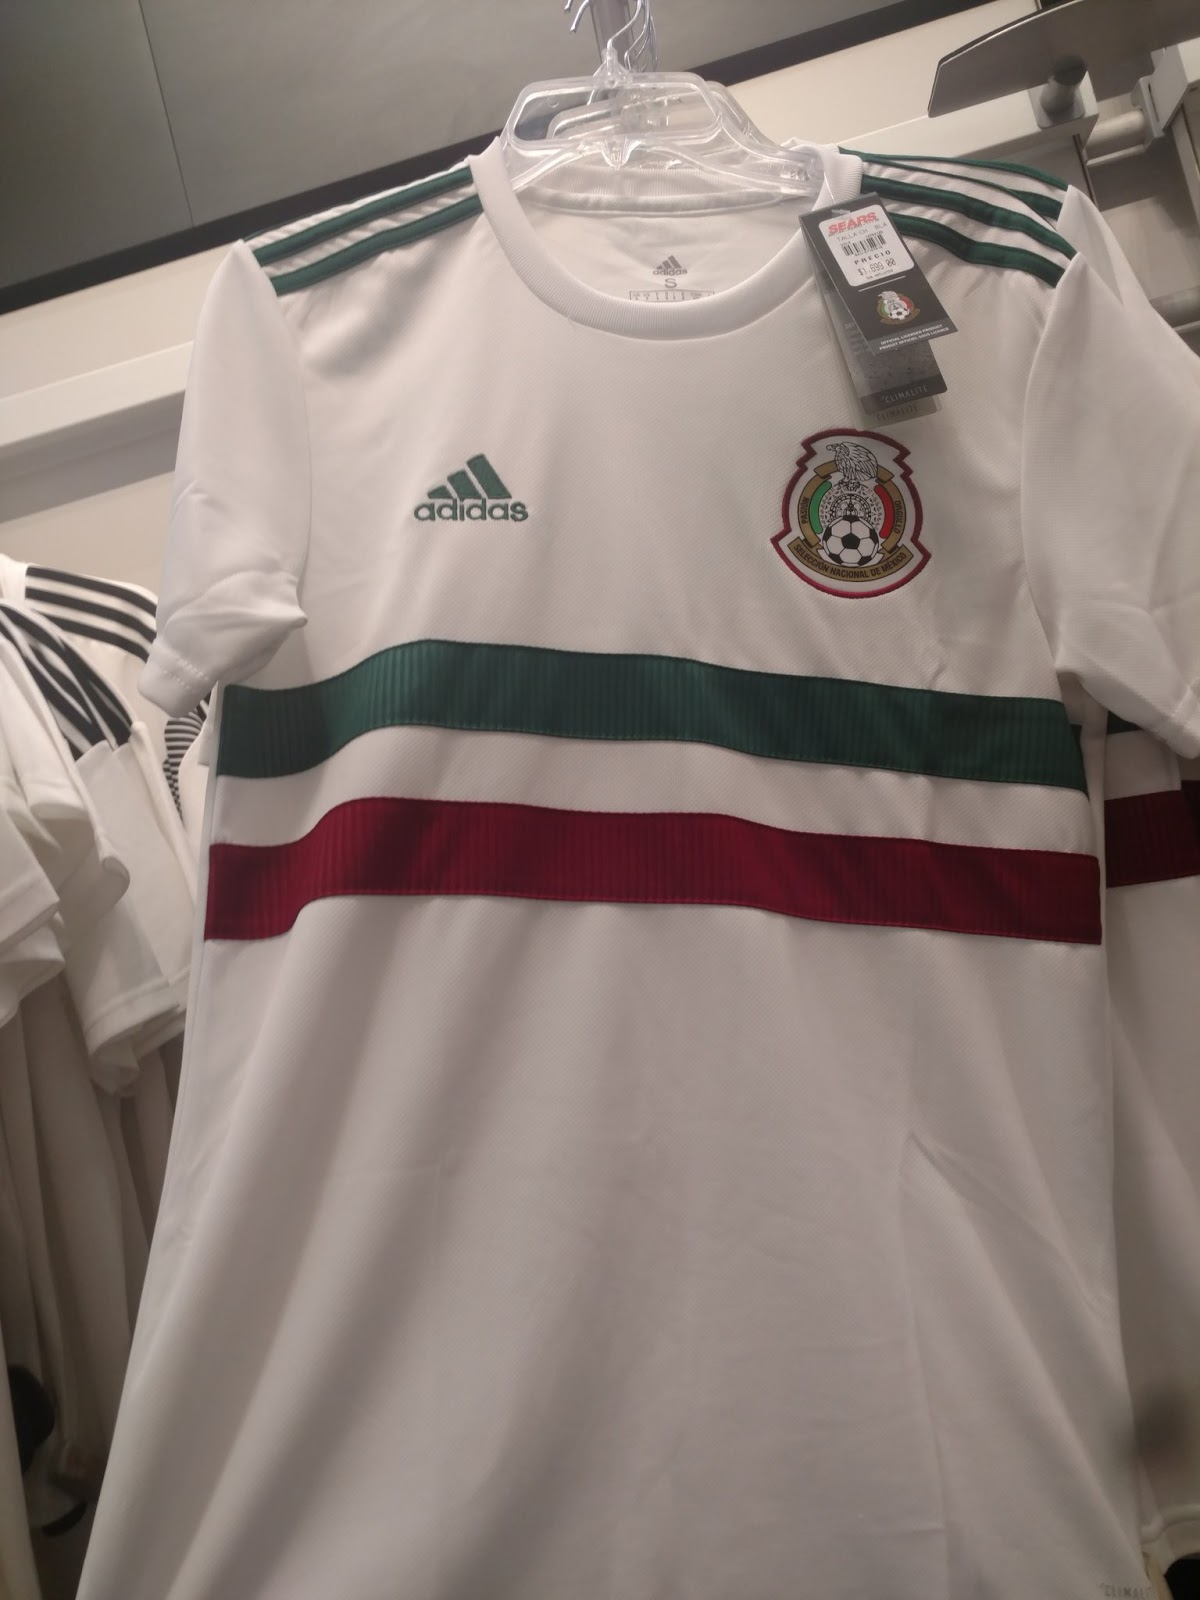 484c7ea95 Mexico 2018 World Cup Away Kit Leaked